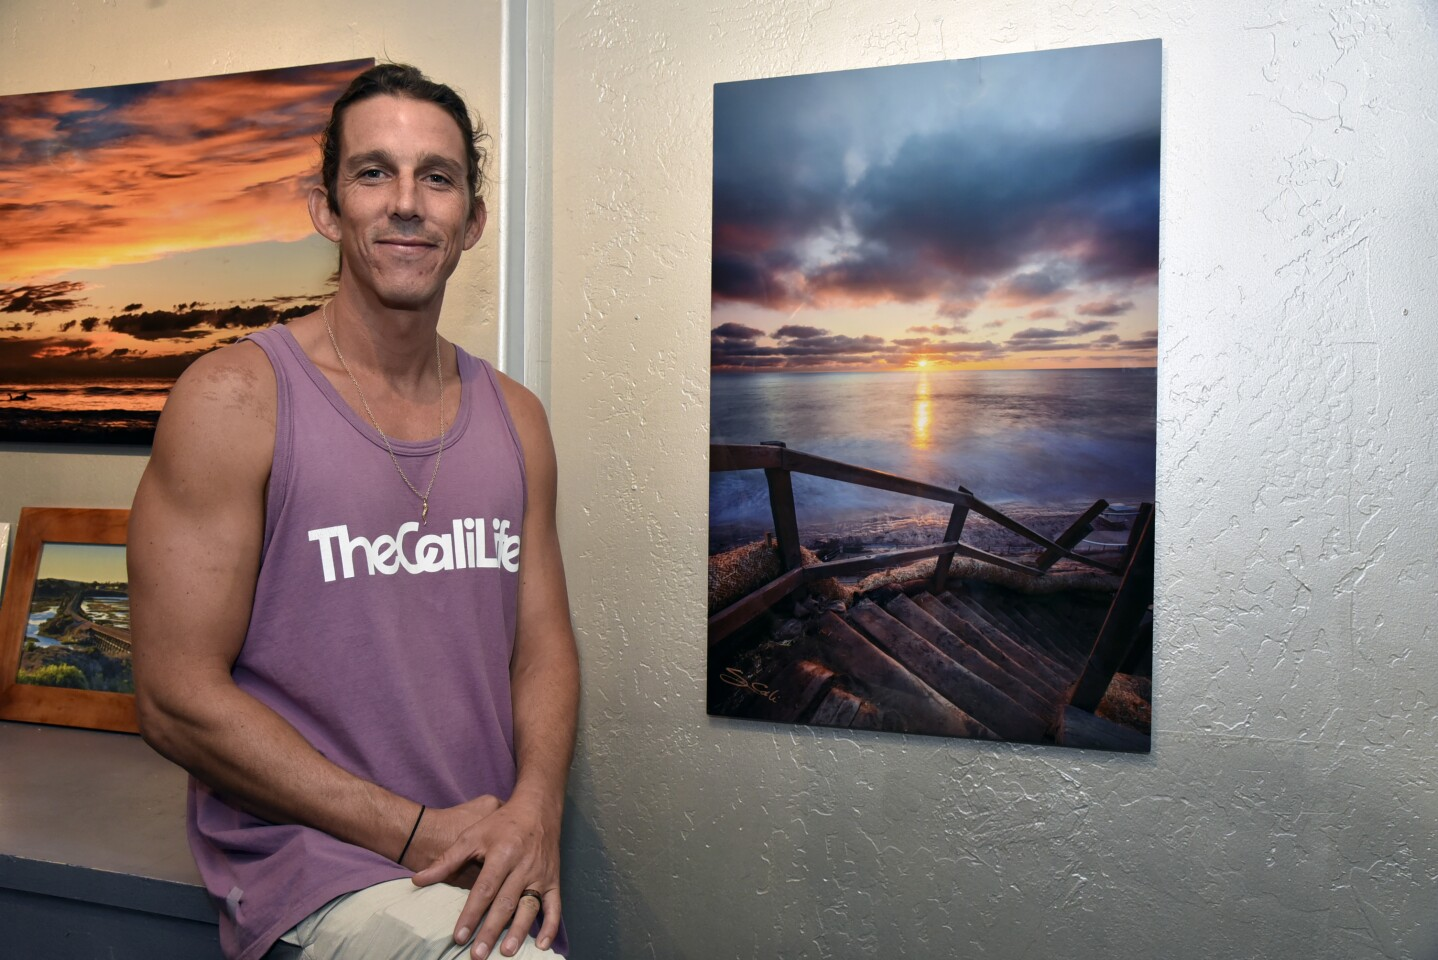 Greg Cali (Owner/Photographer of The CaliLife Gallery & Photography Studio) lost years of his art work in the fire (www.theCaliLife.com)